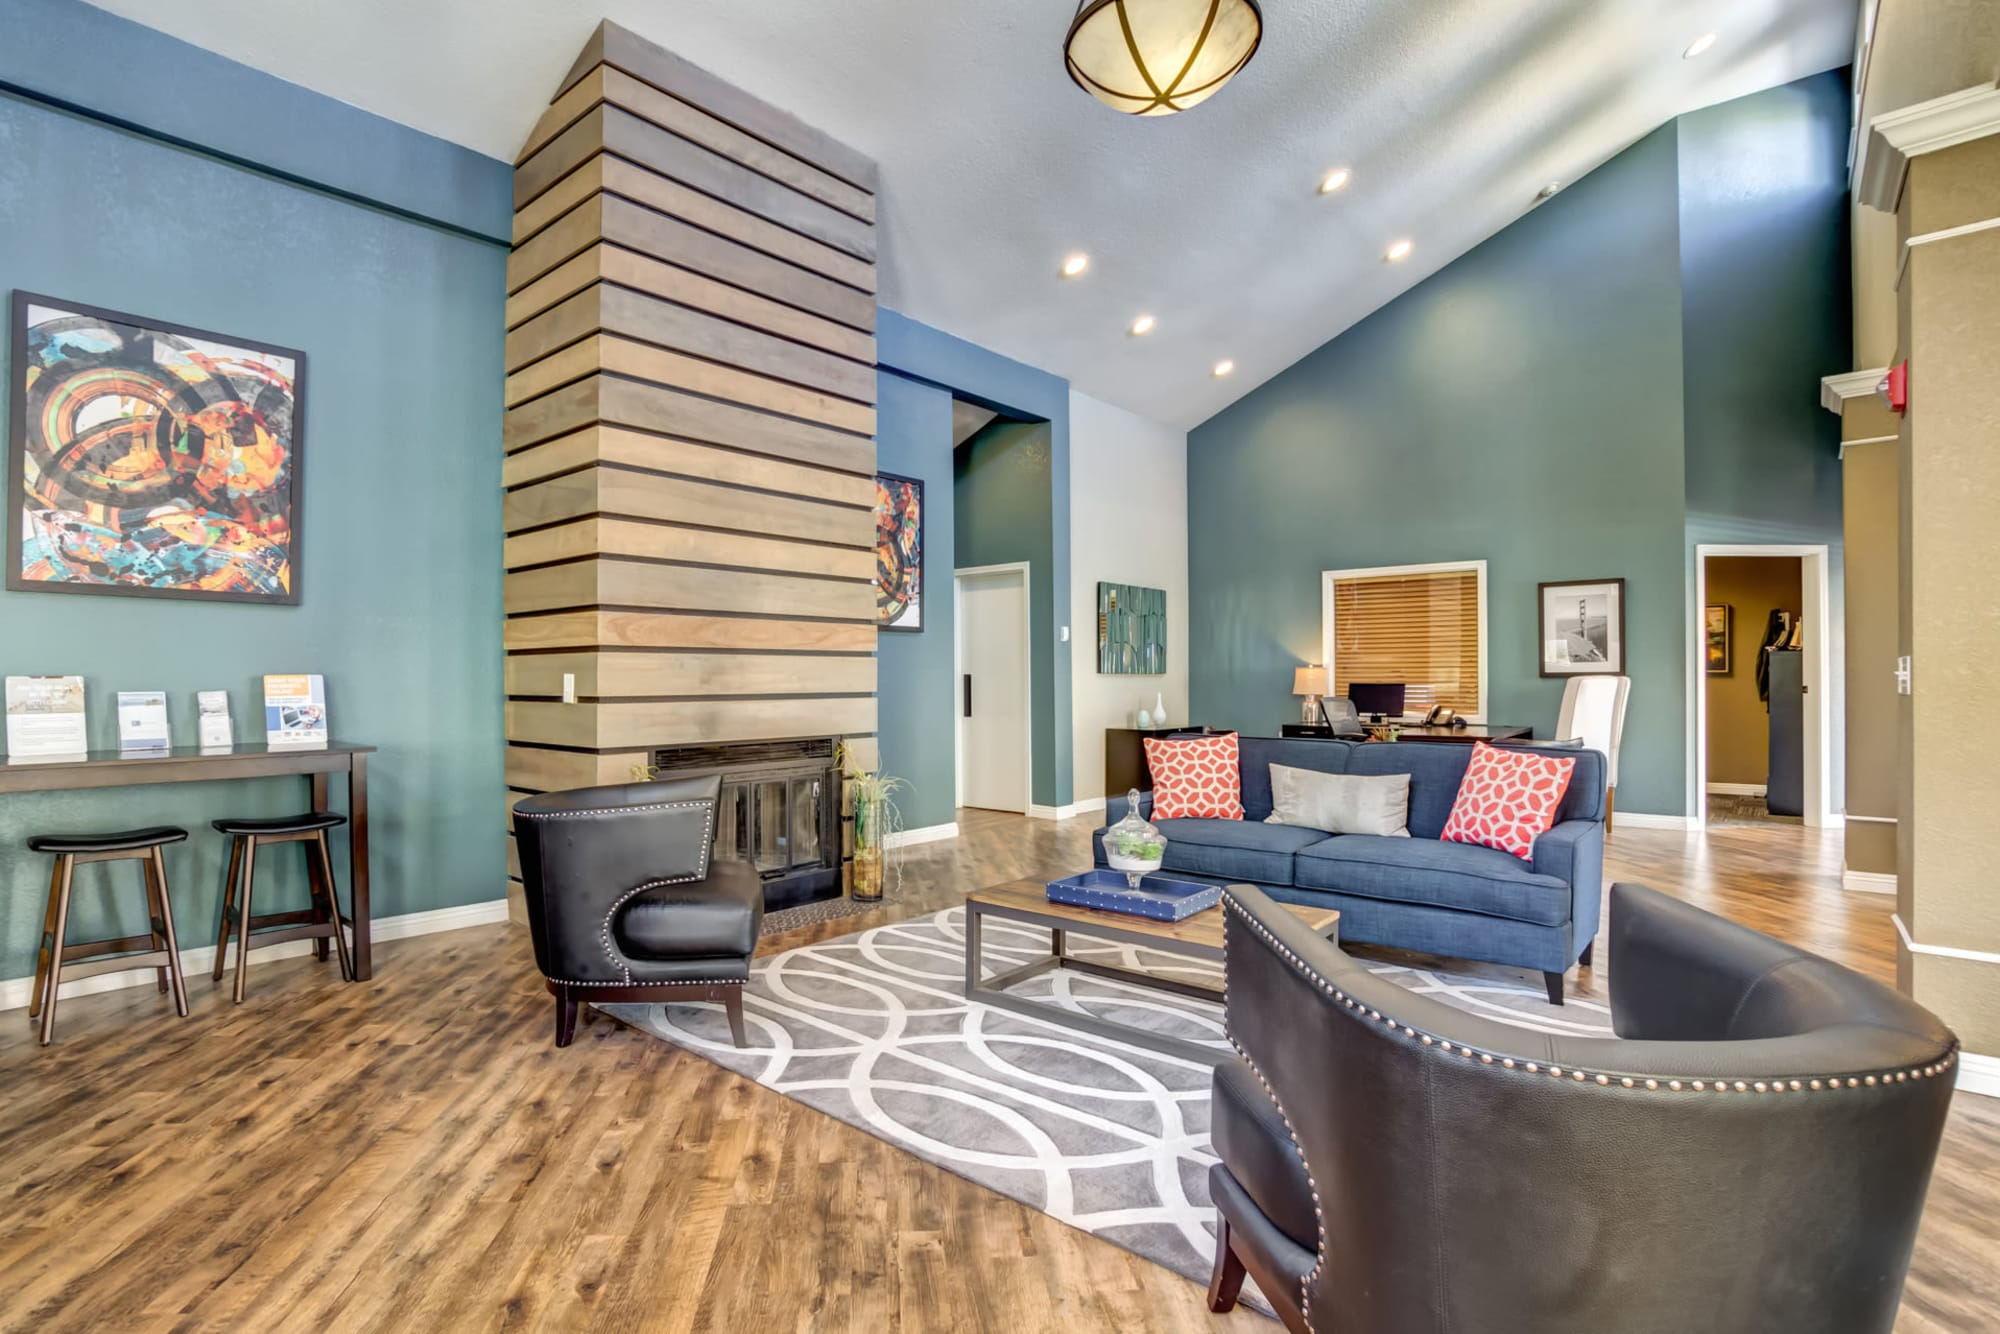 Comfortable seating in the inviting lounge at Serramonte Ridge Apartment Homes in Daly City, California